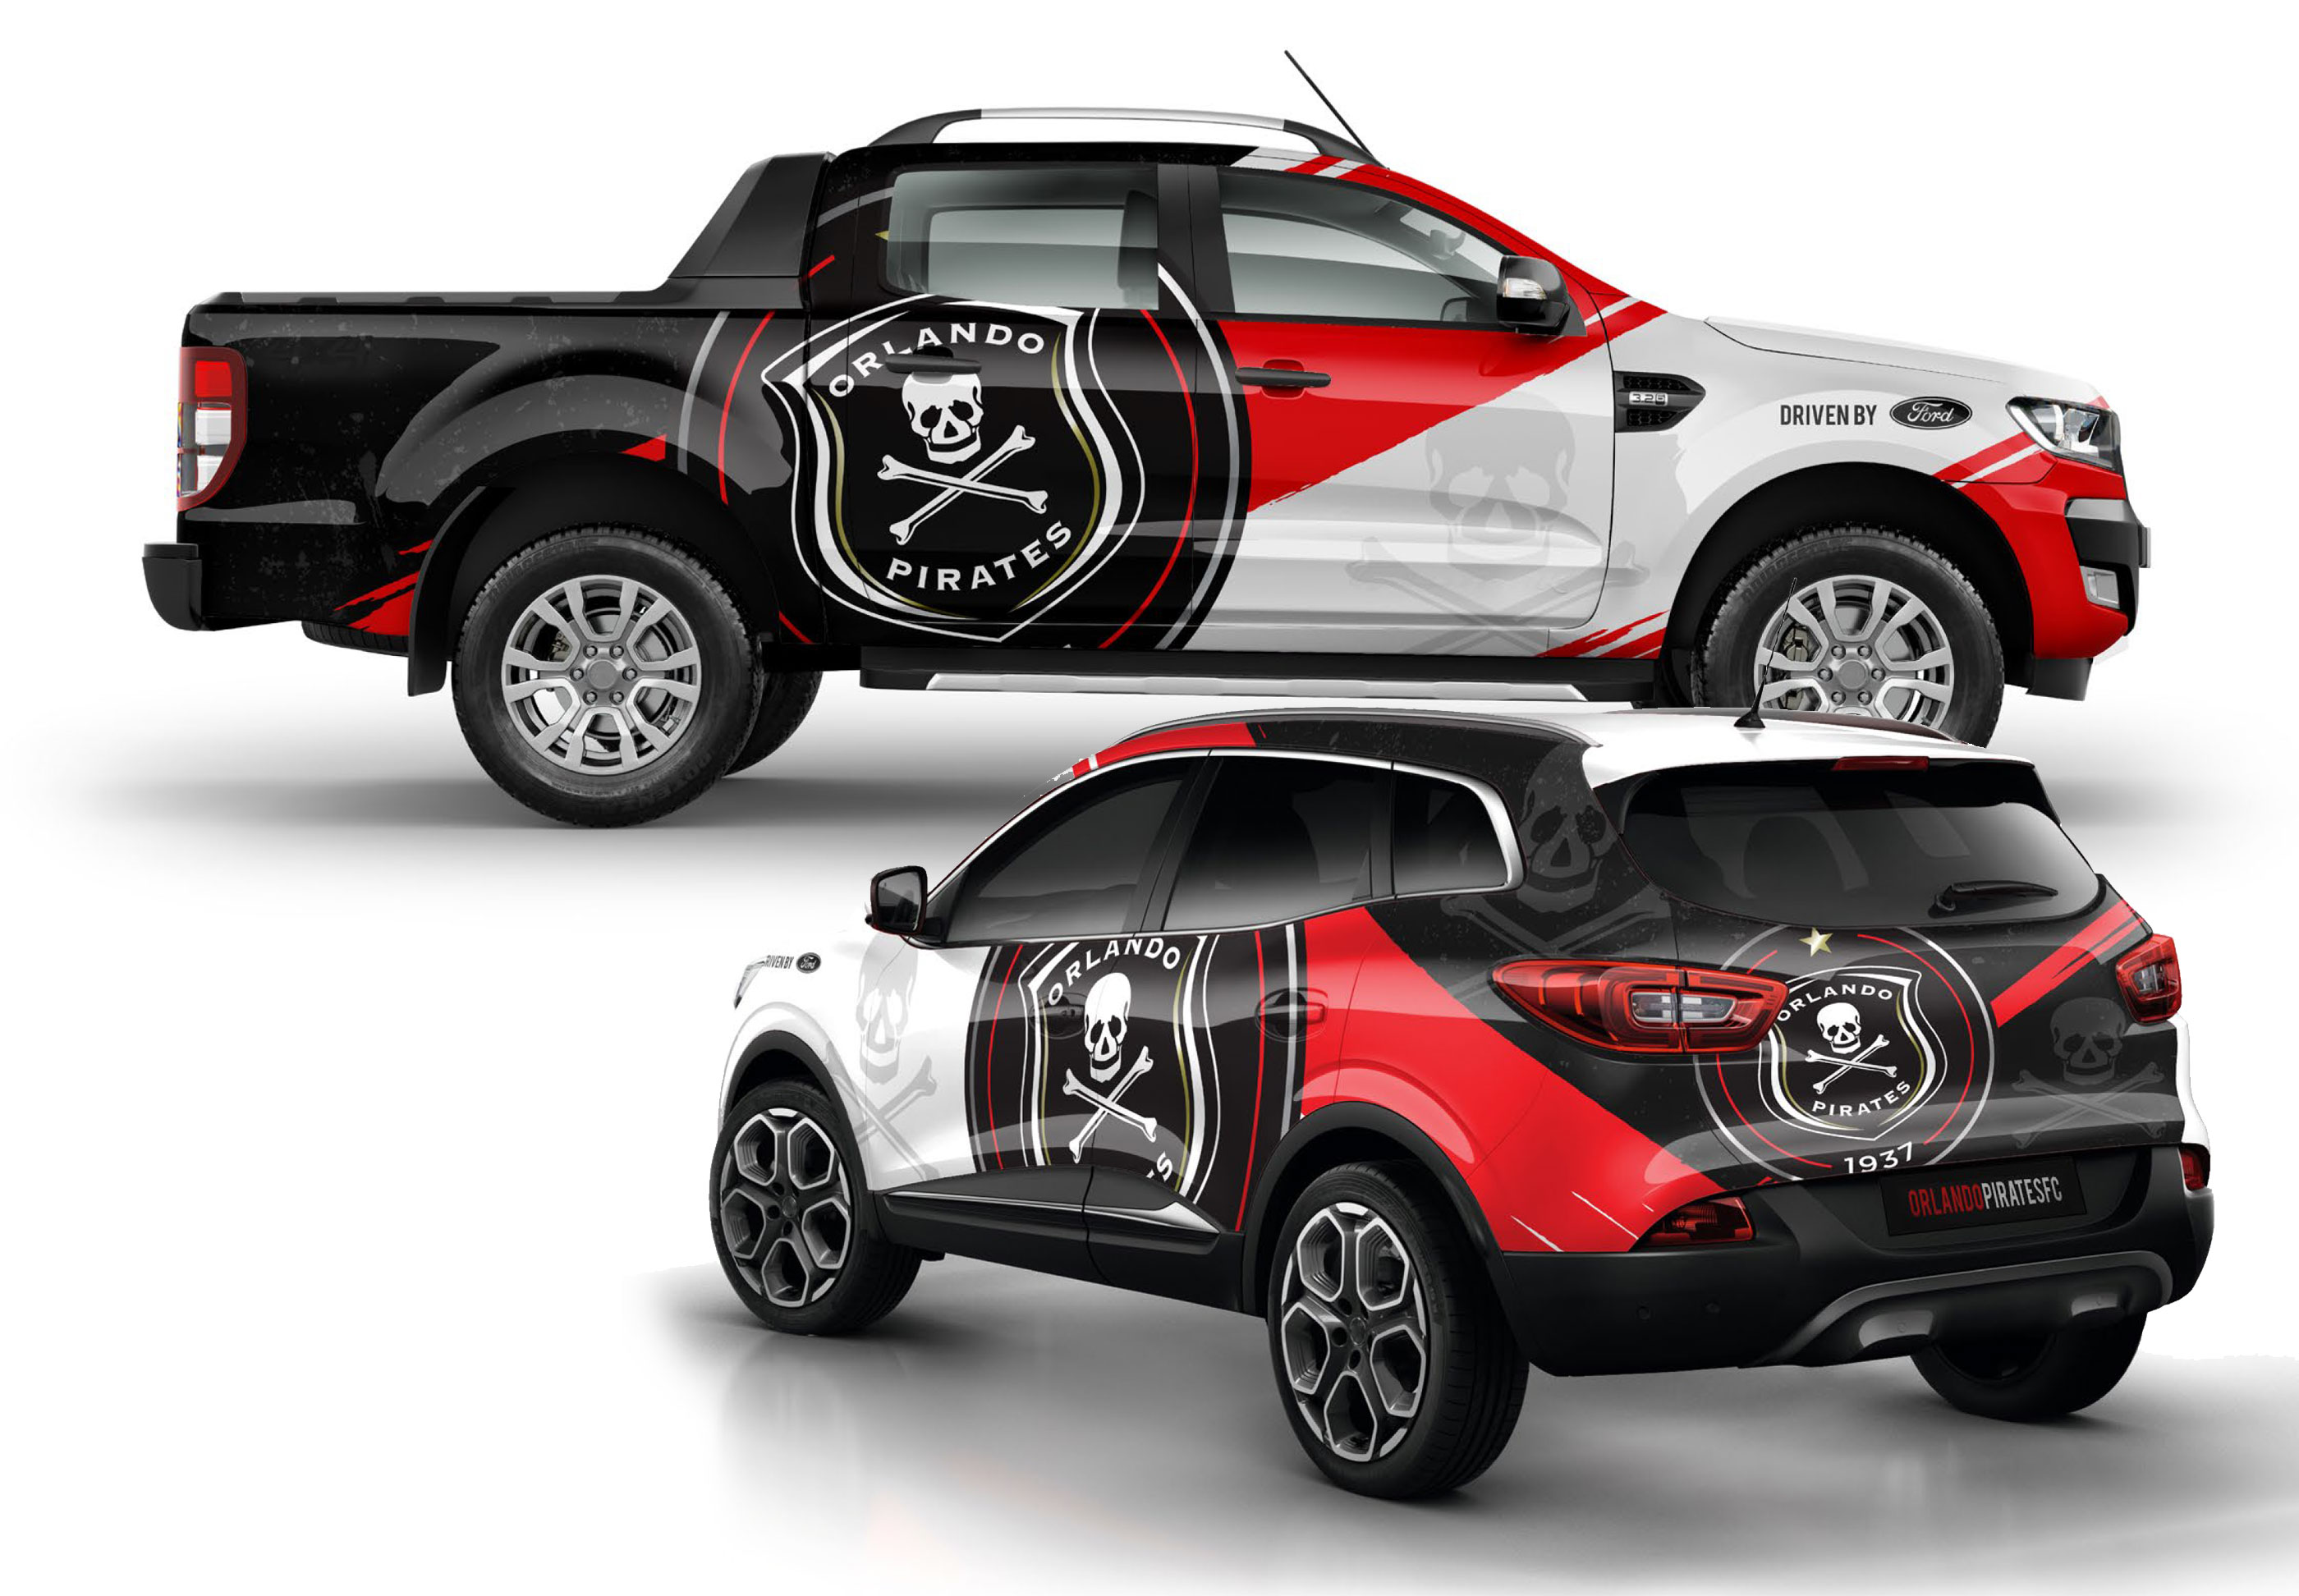 Orlando Pirates Vehicle Branding Agent Orange South Africa